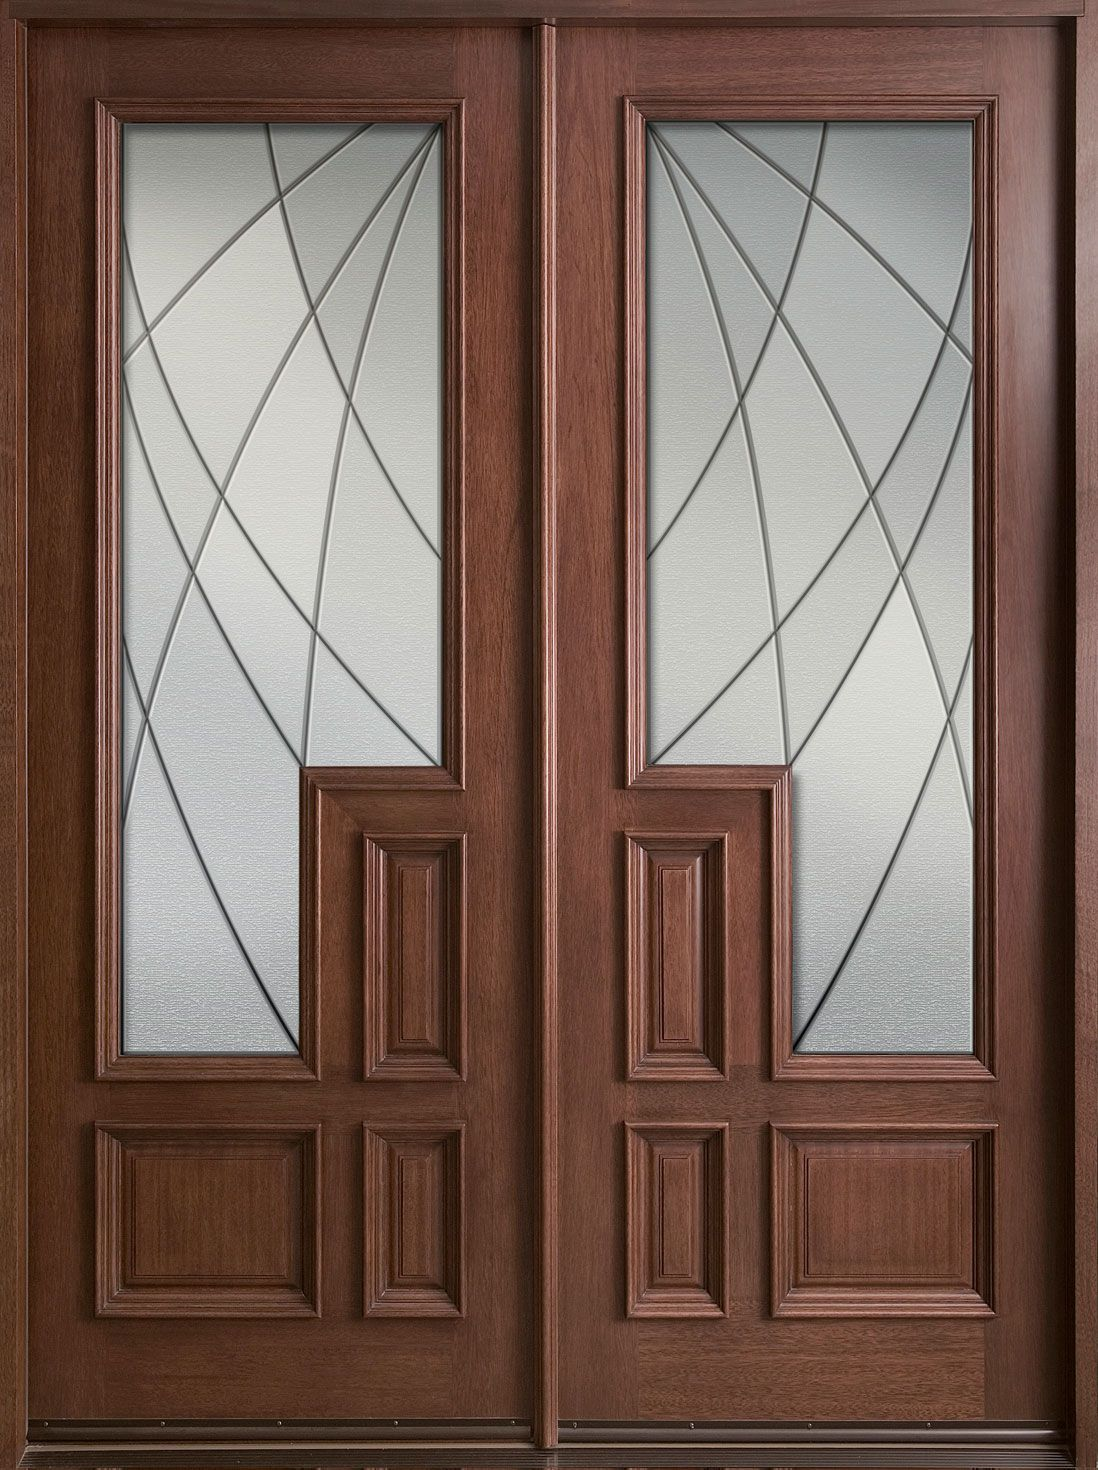 Inspiring double fiberglass entry door as furniture for for Wood exterior front doors